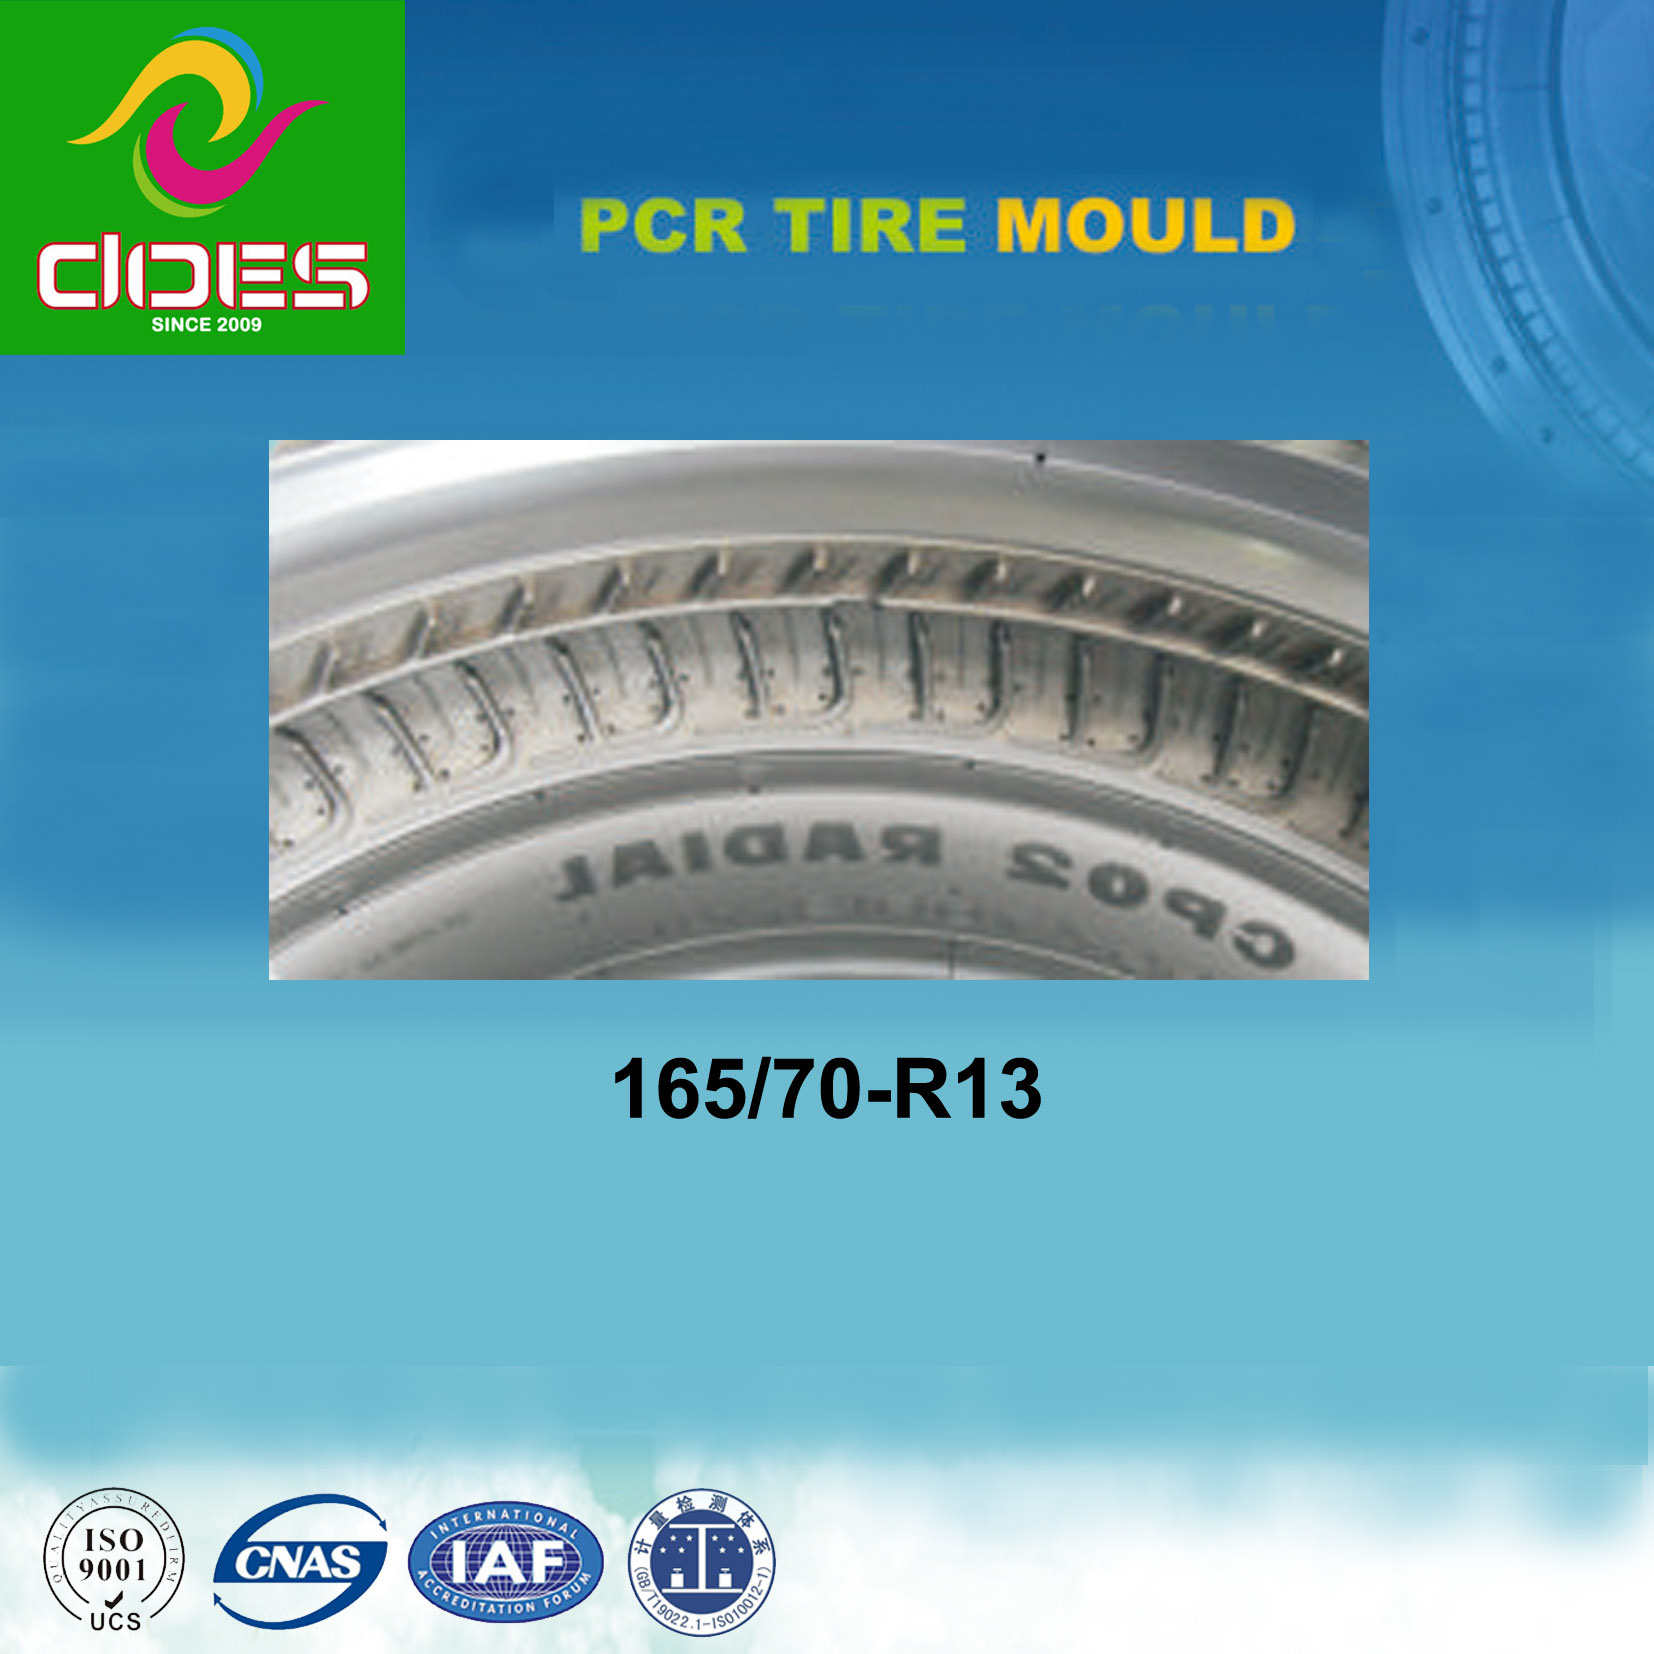 Tyre Mould for PCR Tubeless with 165/70-R13